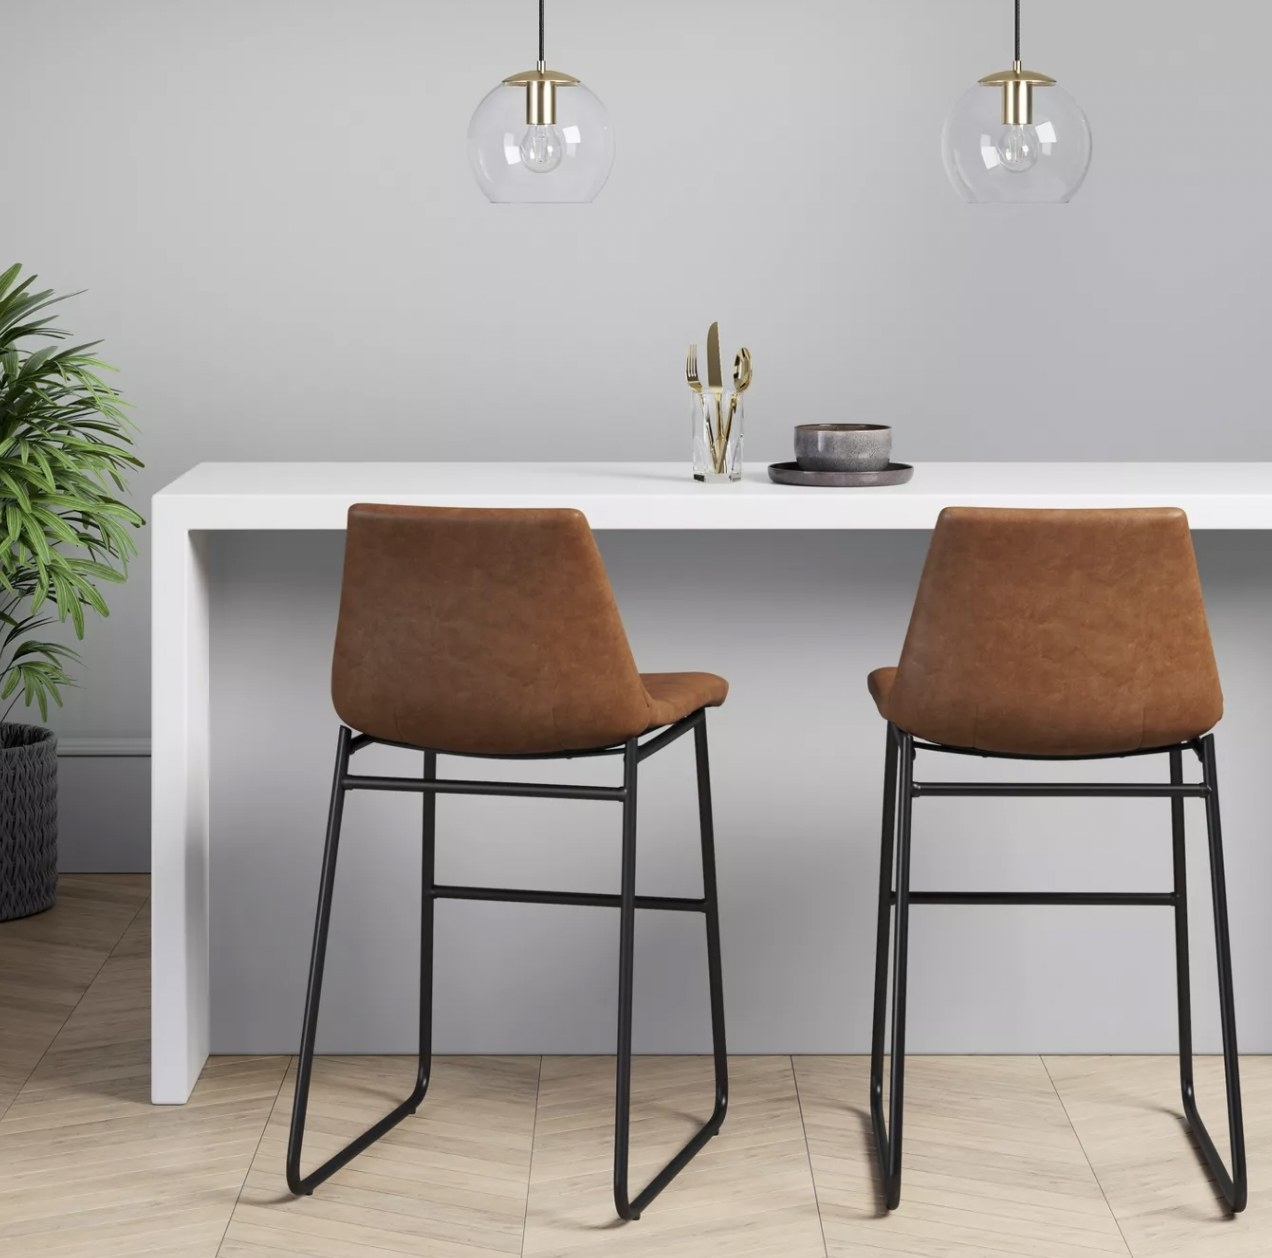 two faux brown leather bar stools with backs and black metal legs, at a counter